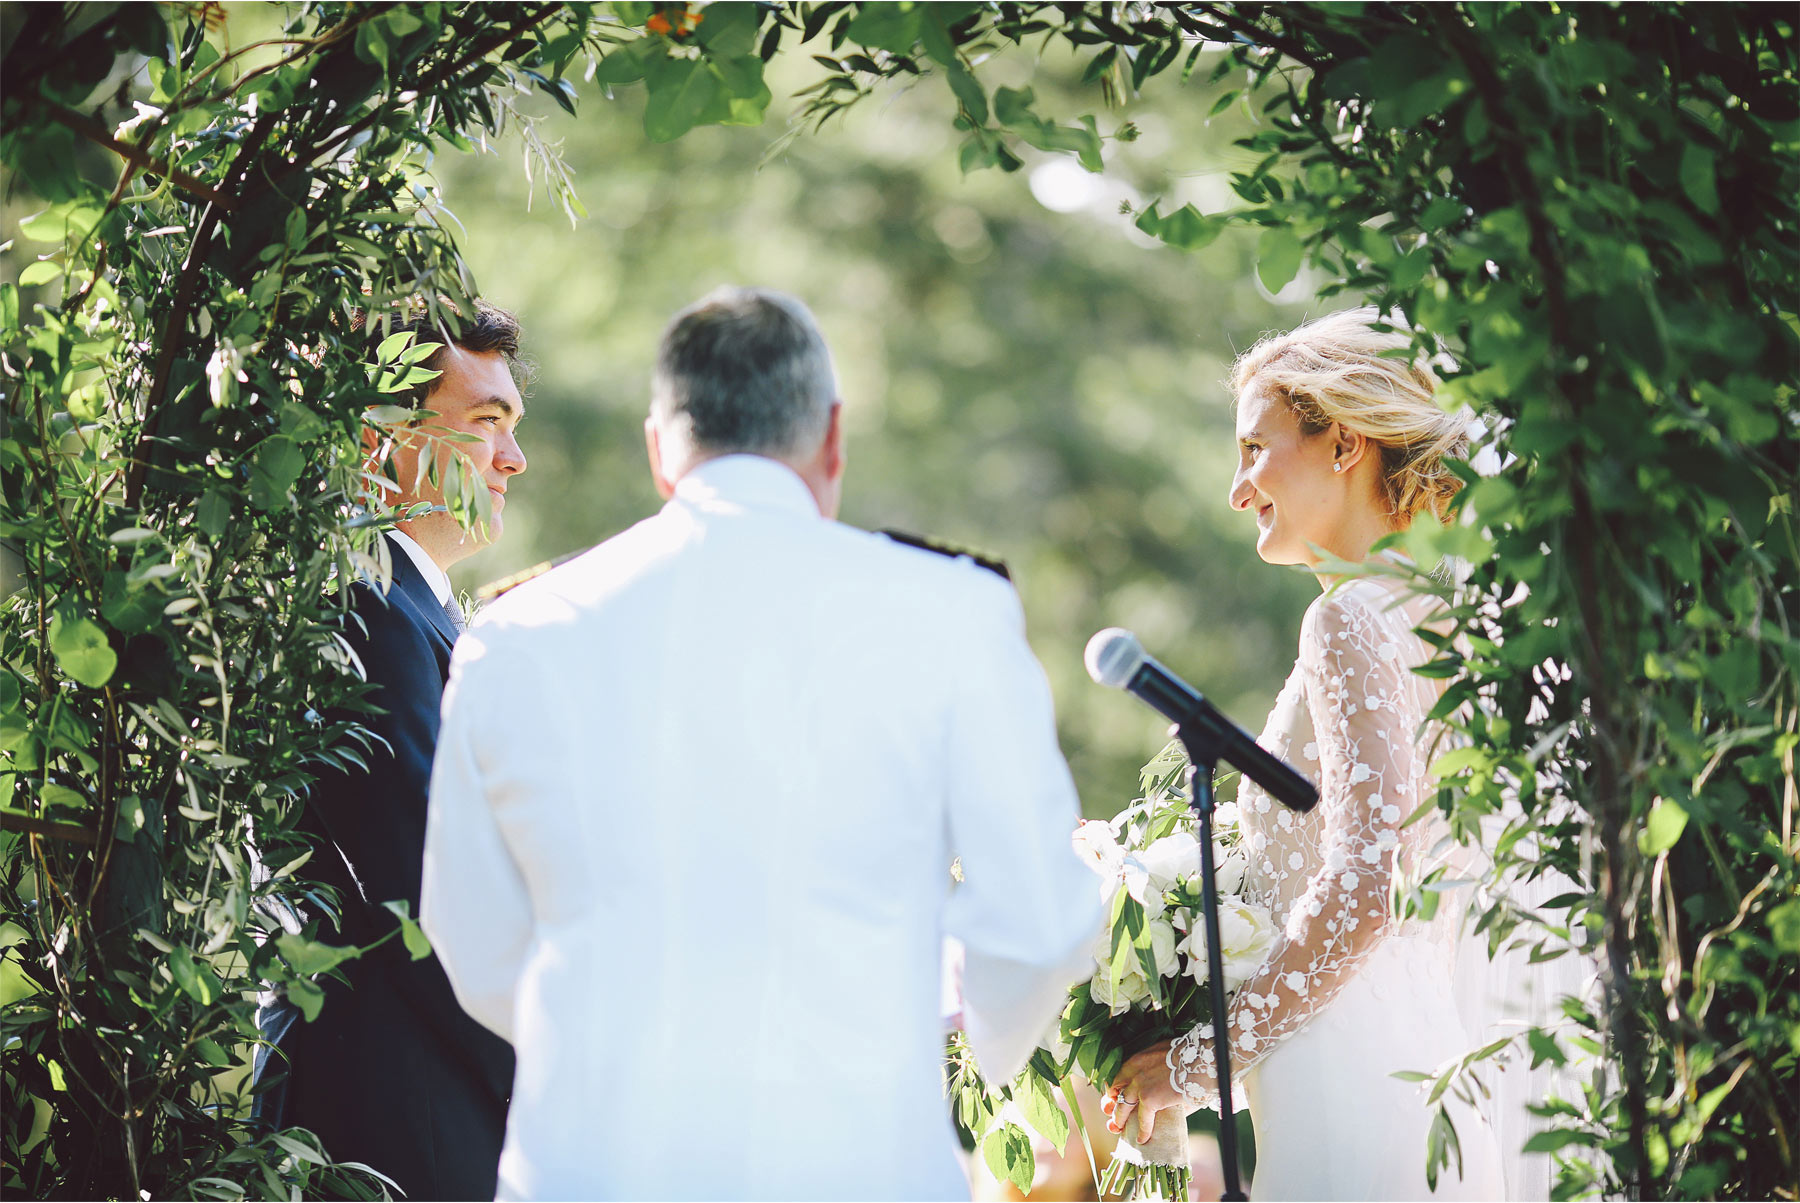 24-Stowe-Vermont-Wedding-Photography-by-Vick-Photography-Edson-Hill-Ceremony-Outdoor-Mackenzie-and-Jim.jpg